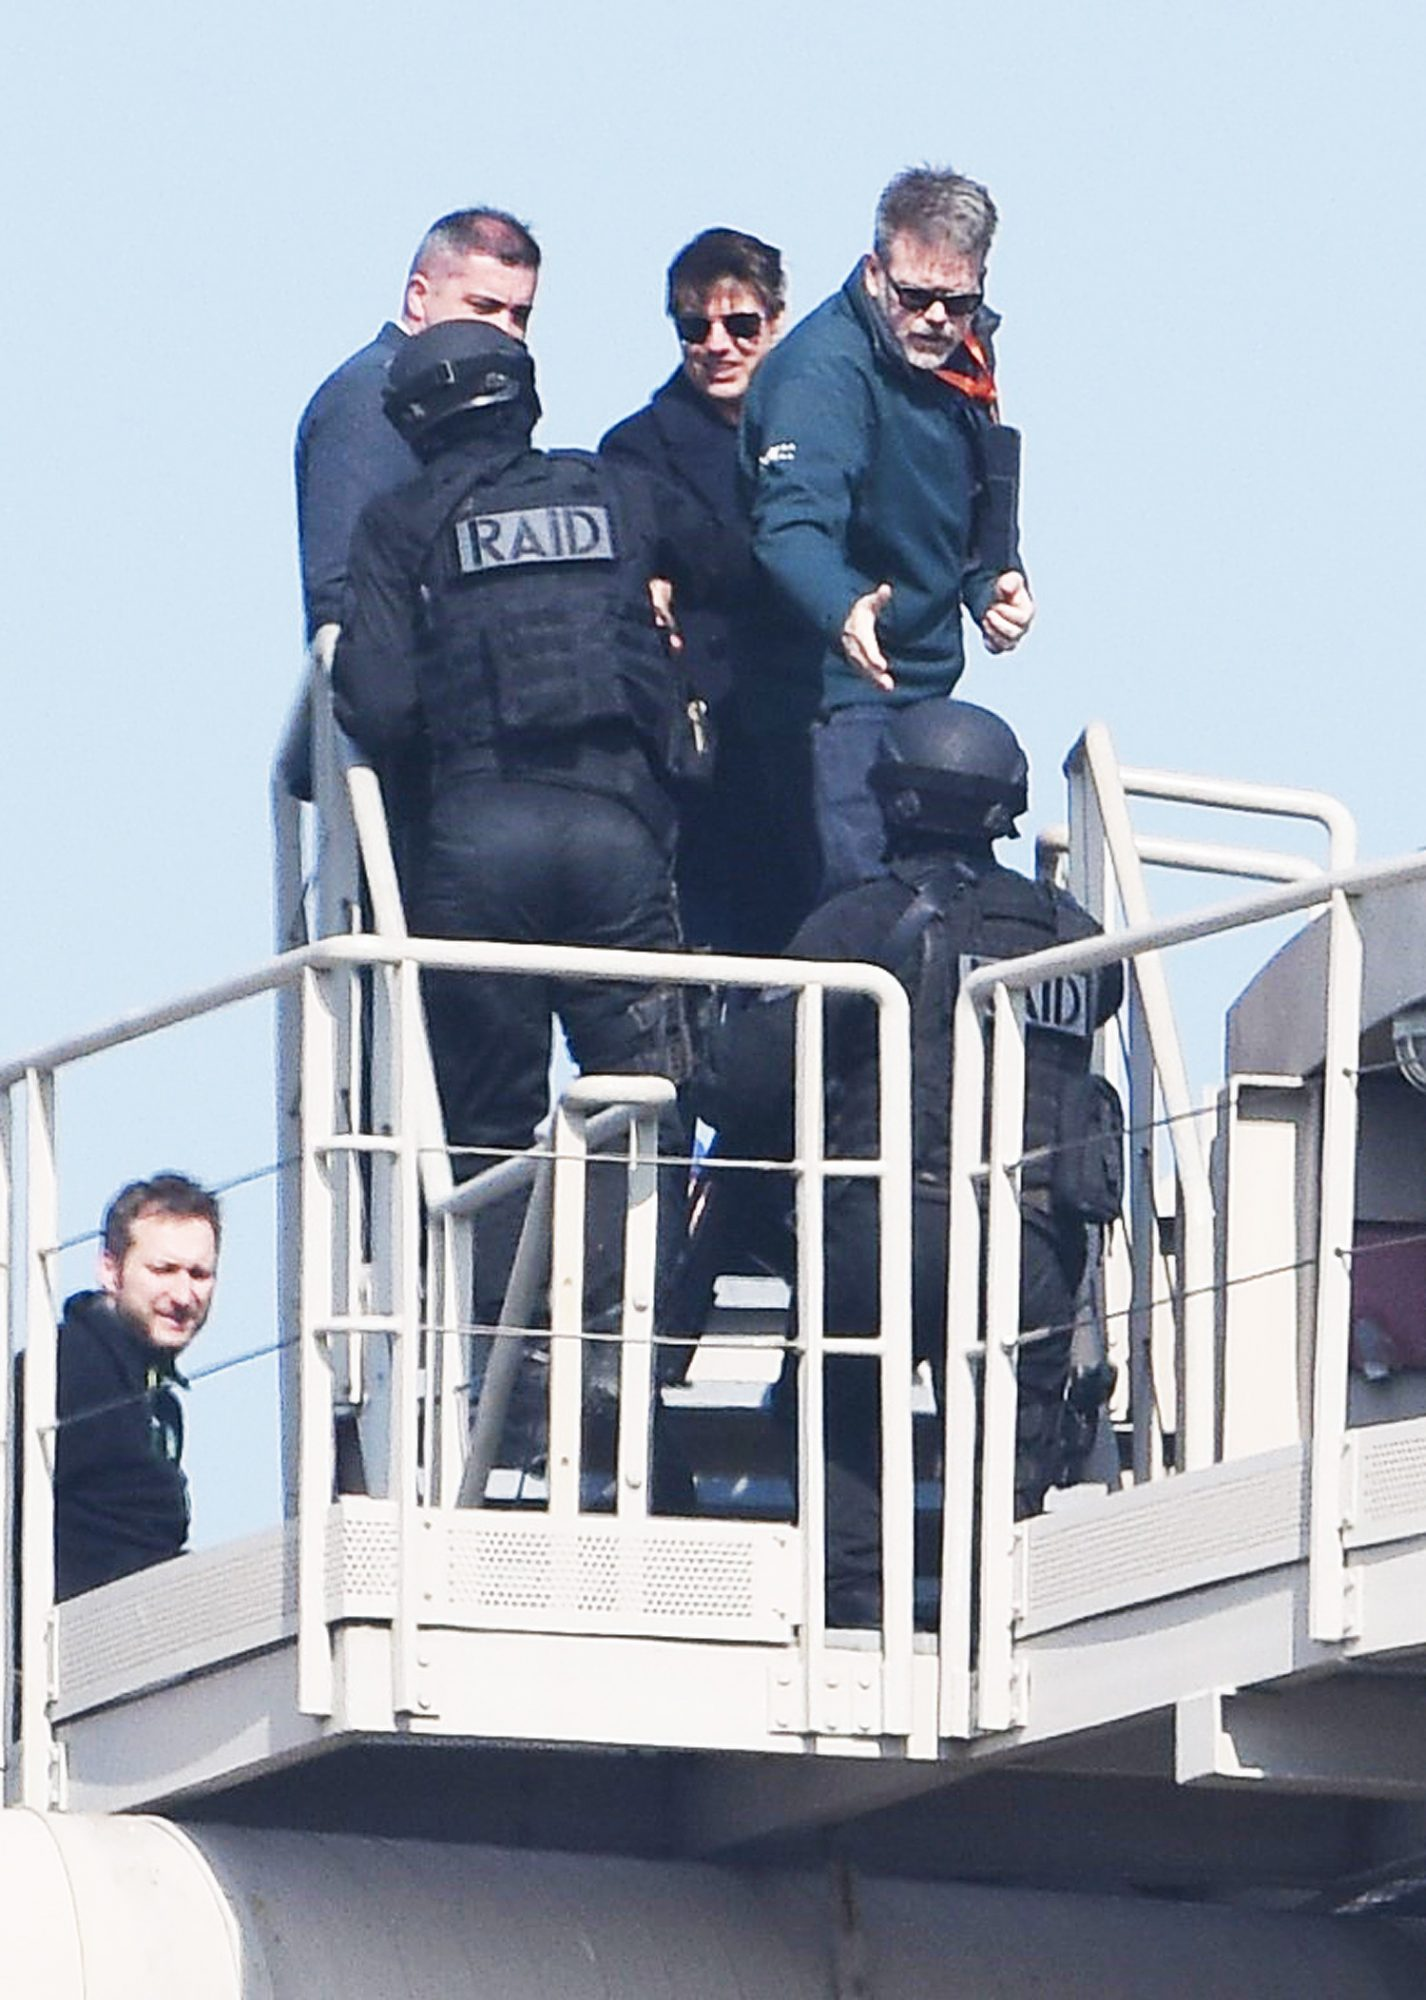 Tom Cruise films for Mission: Impossible 6 at Bercy